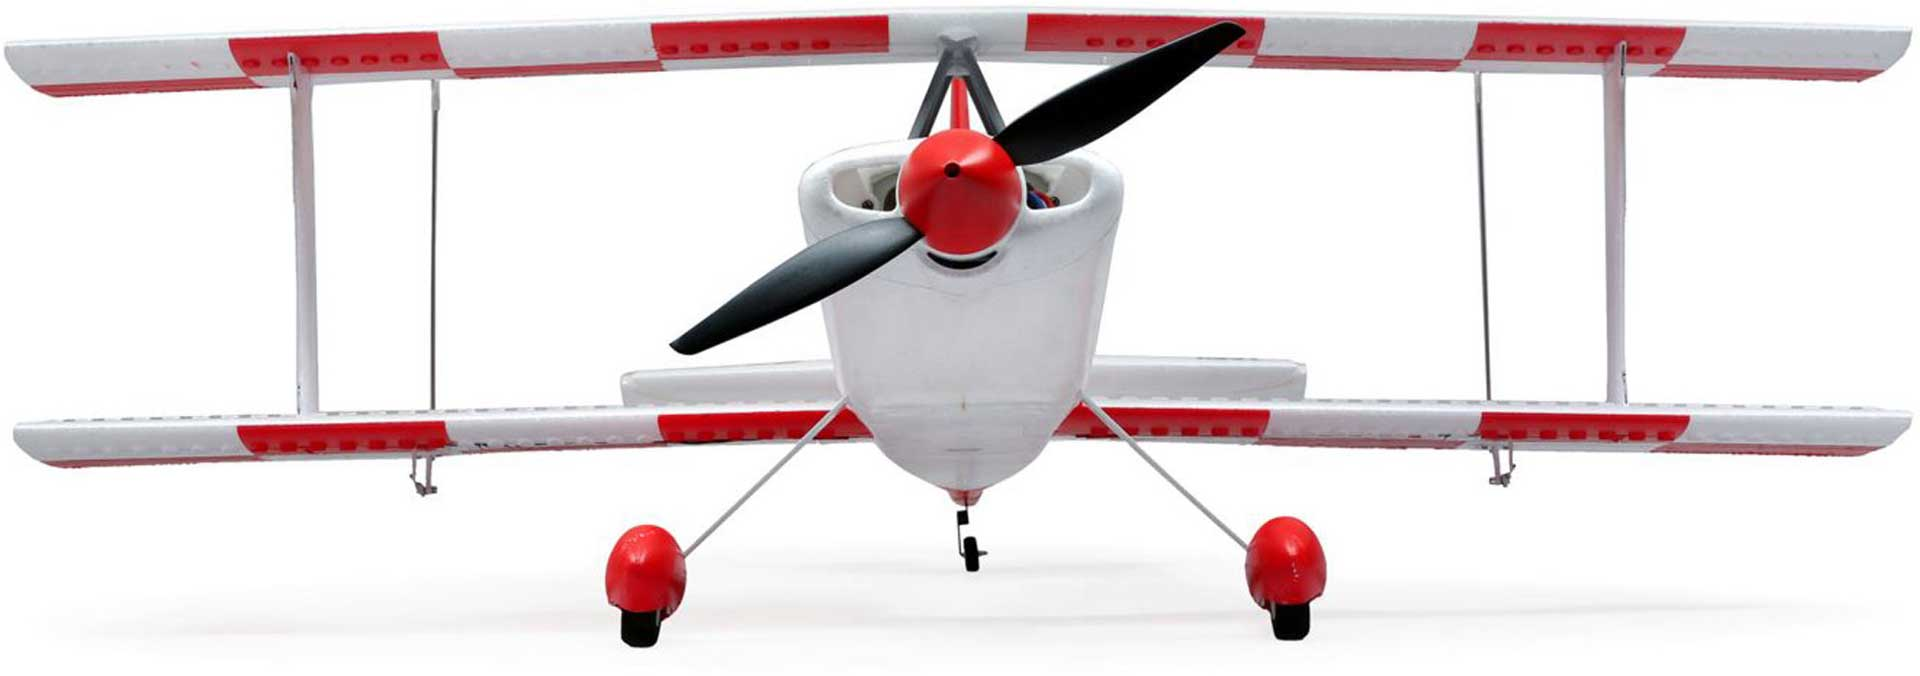 E-Flite ULTIMATE 3D 950MM PNP with SMART